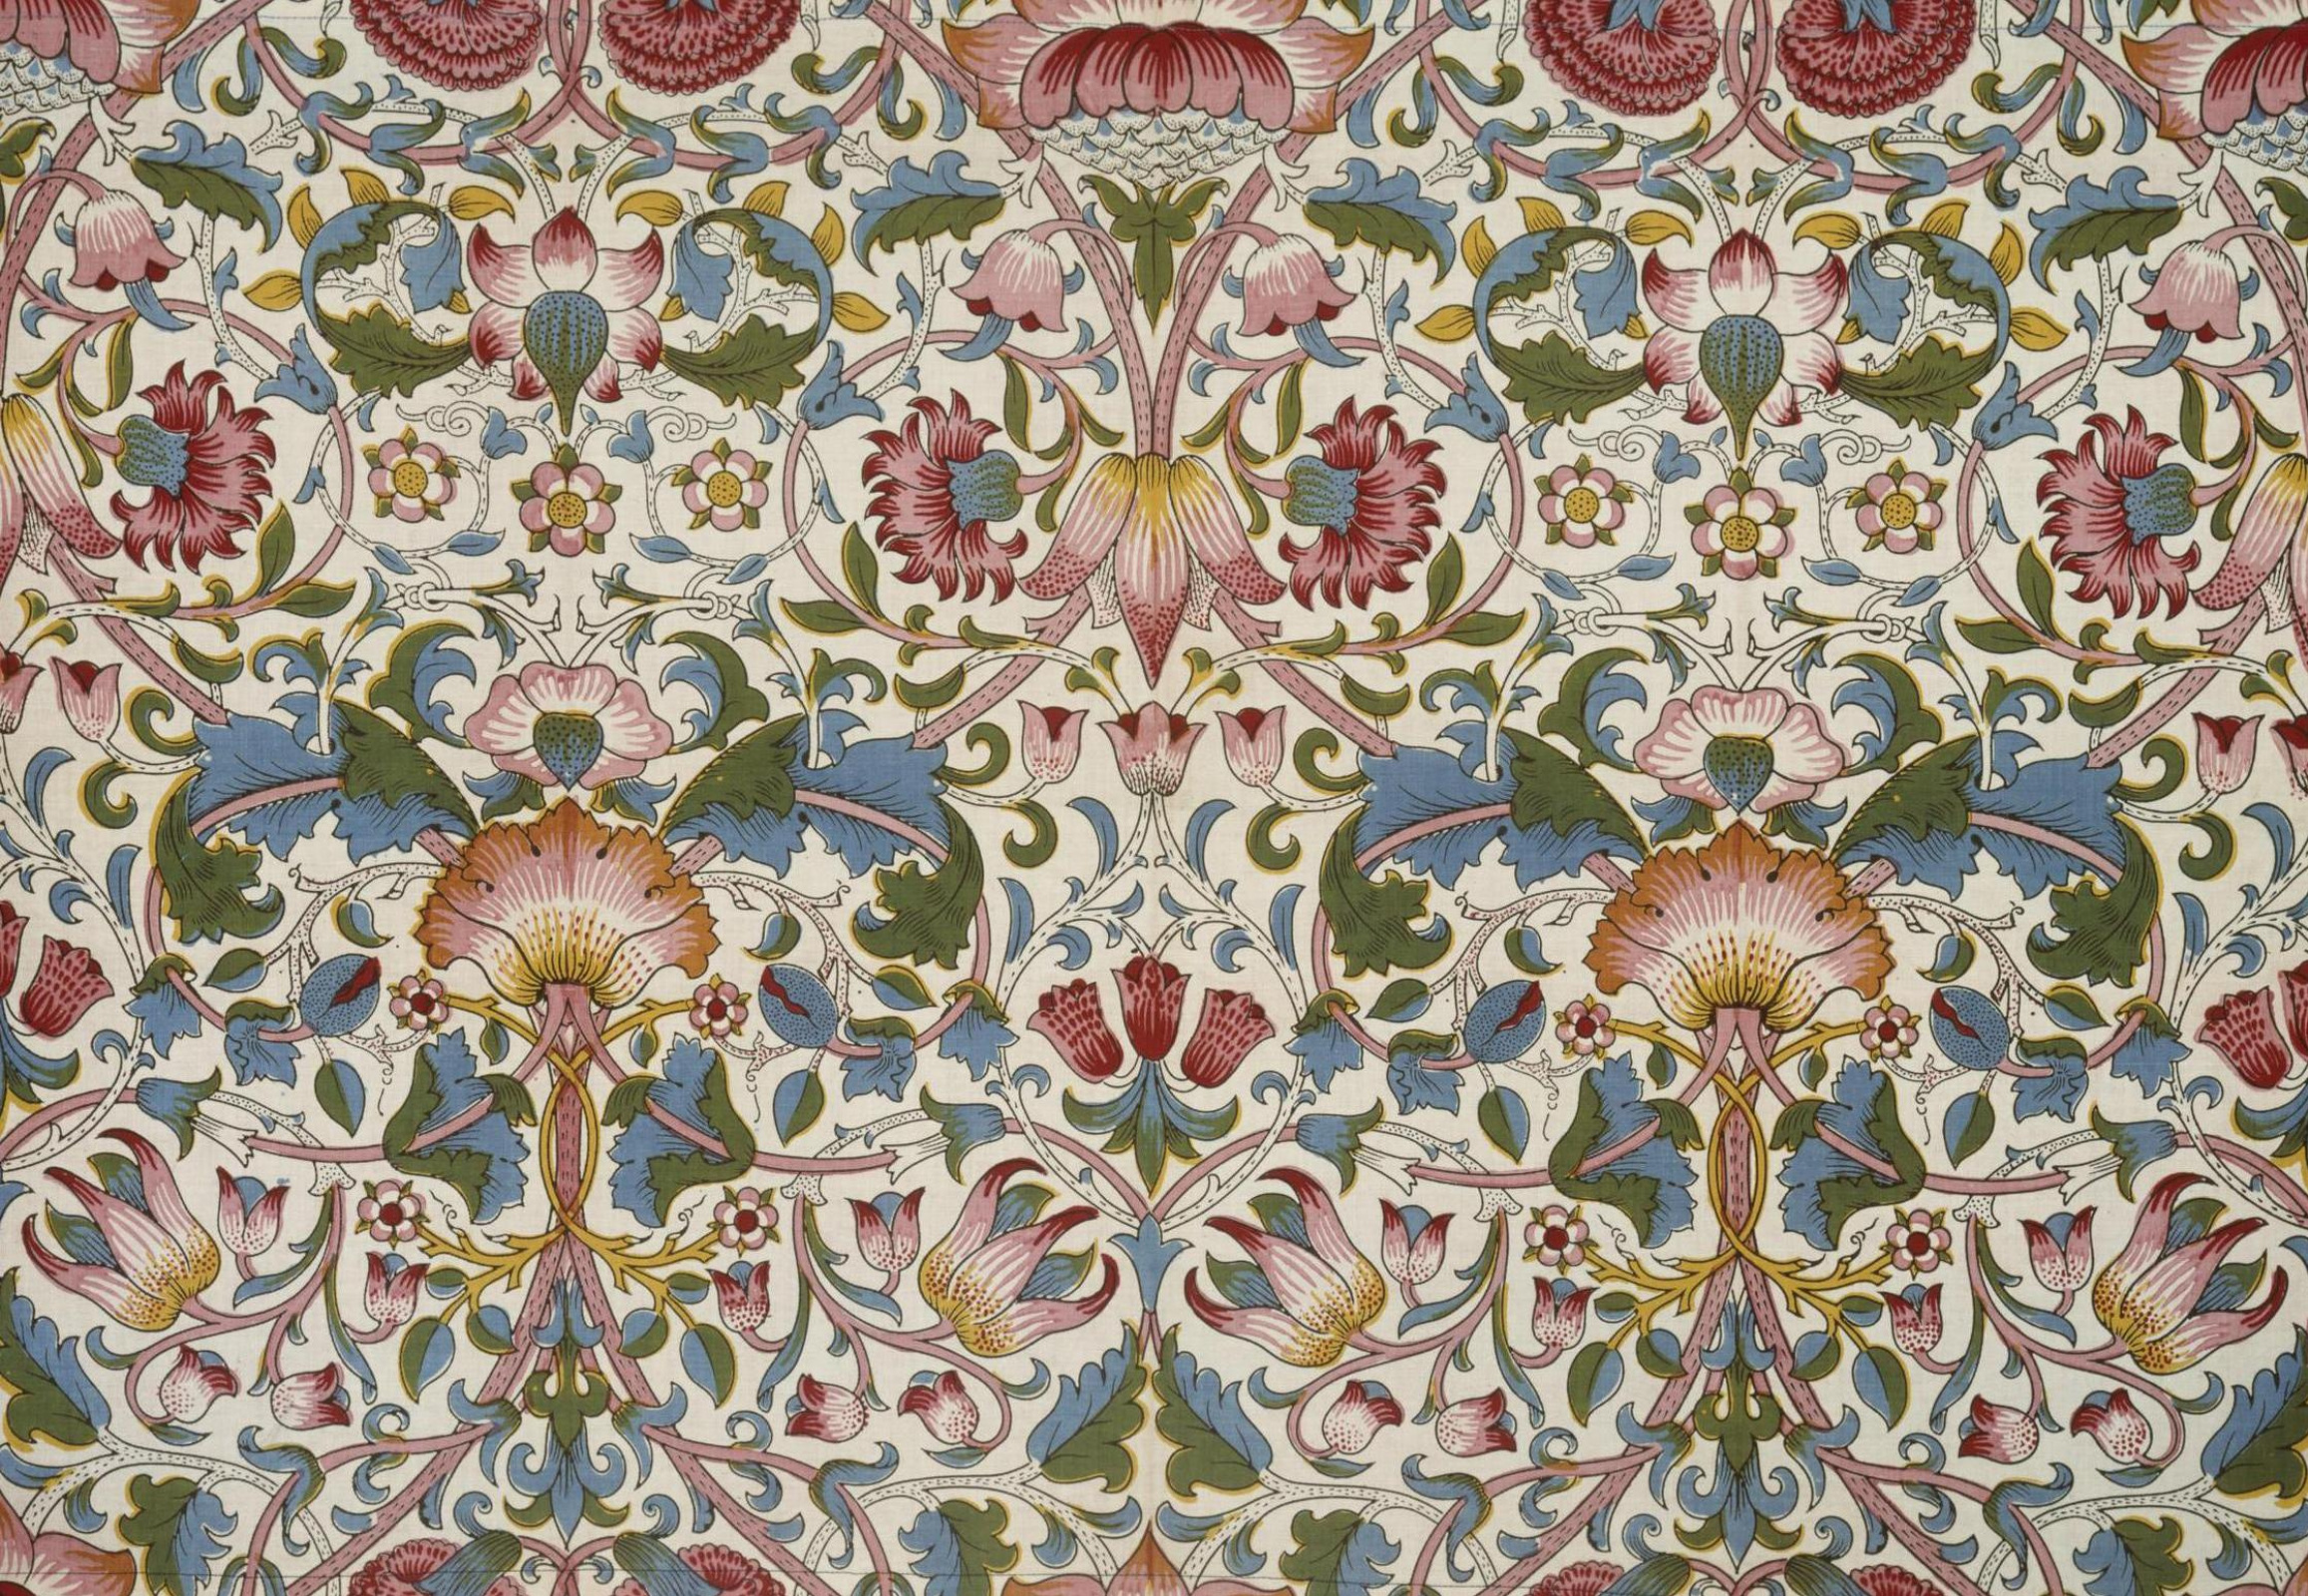 William Morris.  Fourrés de fleurs